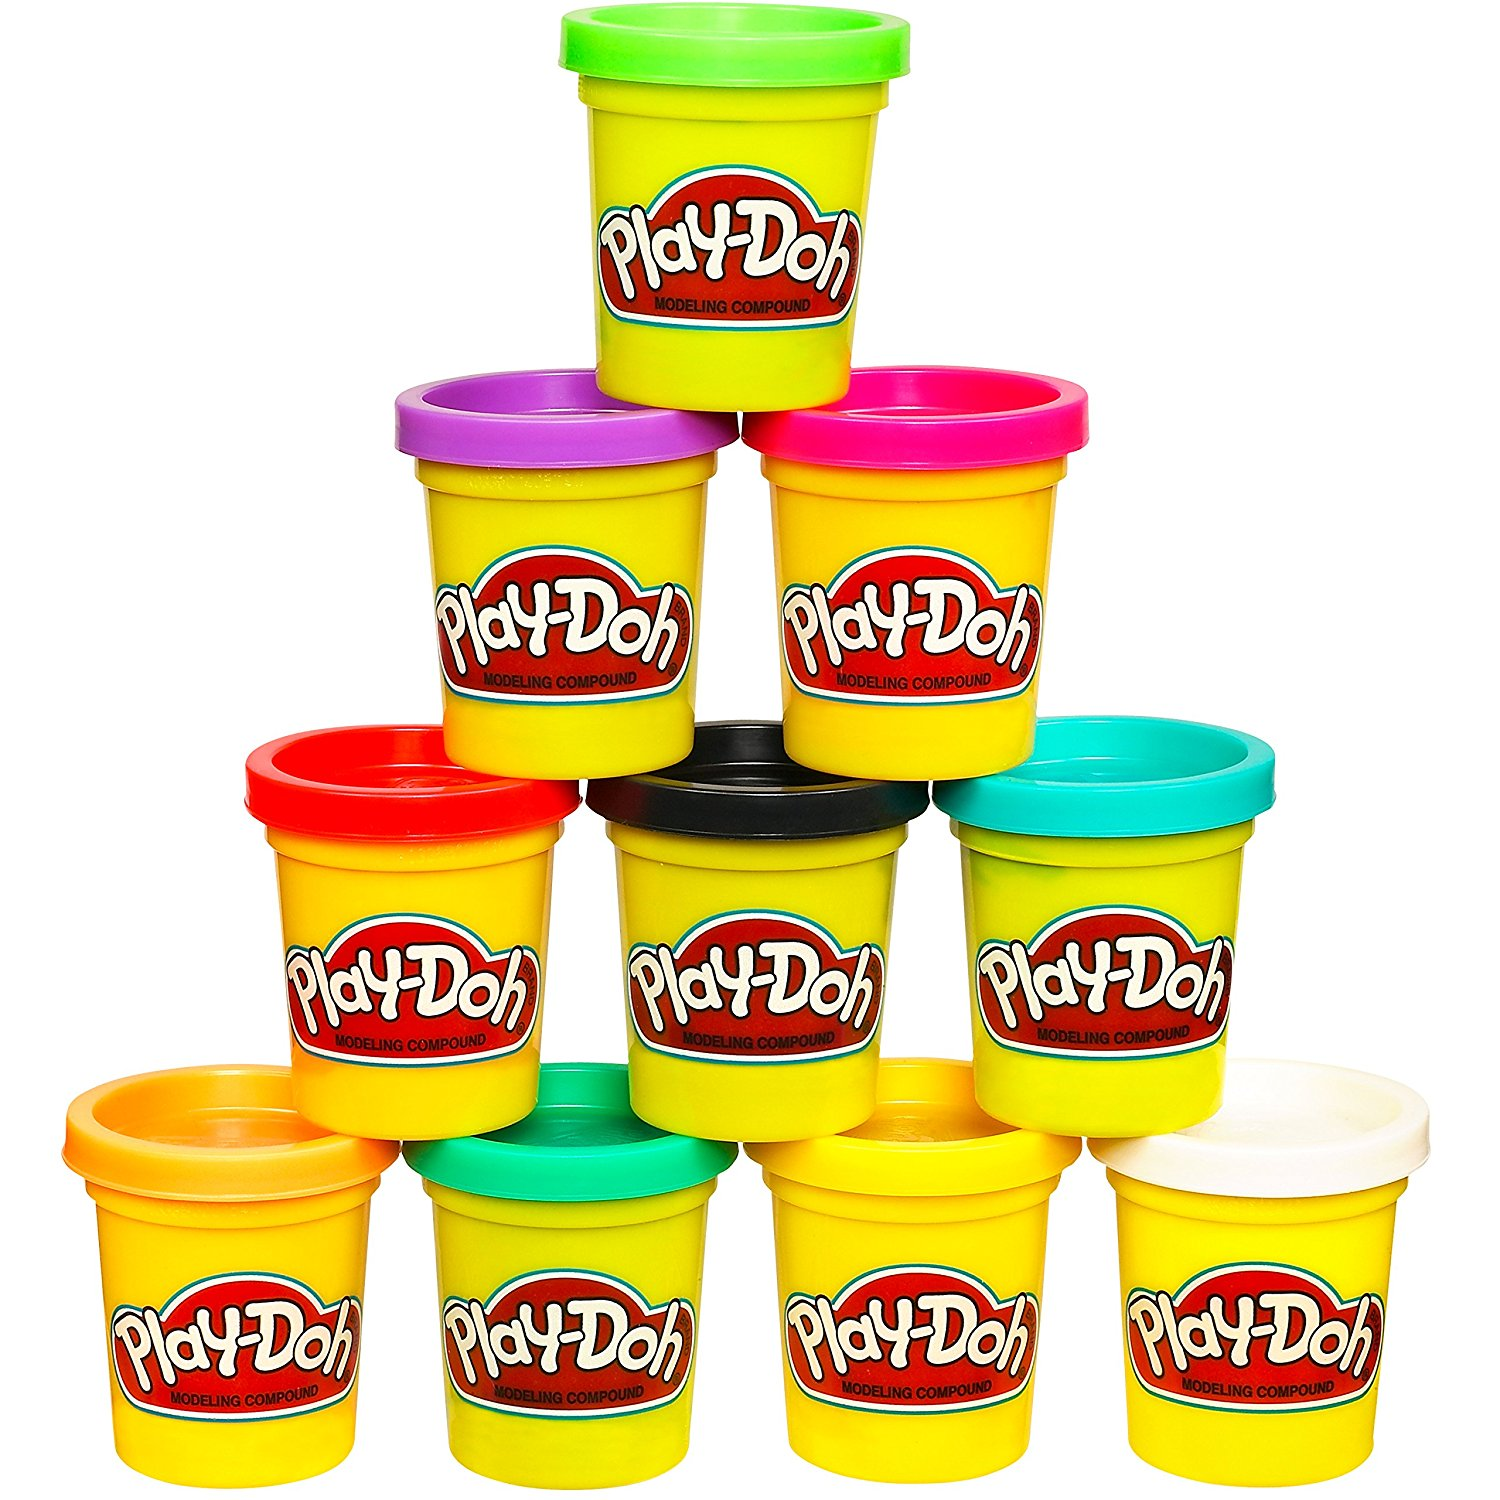 91sUuetY3ML. SL1500  - Play-Doh 10-Pack of Colors (Amazon Exclusive)